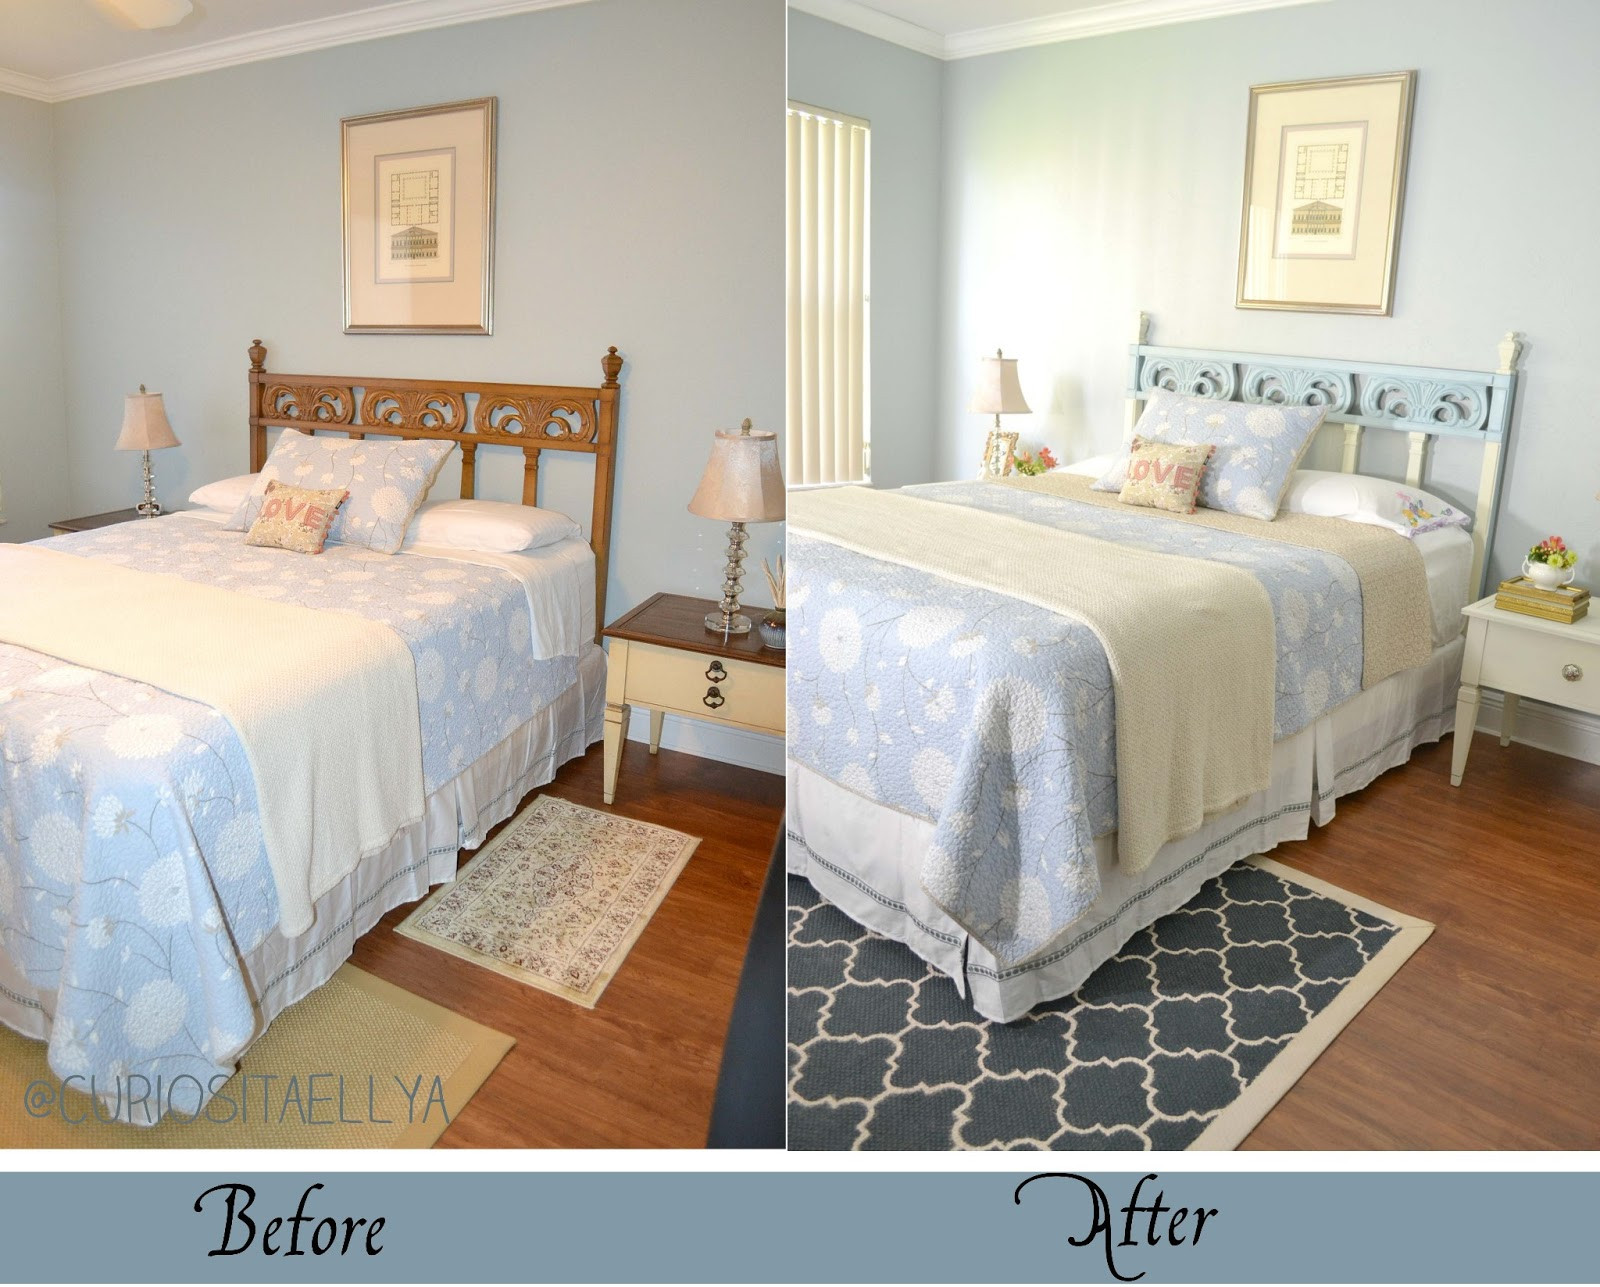 Best ideas about DIY Small Bedroom Makeover . Save or Pin Curiositaellya Guest Bedroom Furniture Makeover DIY Now.